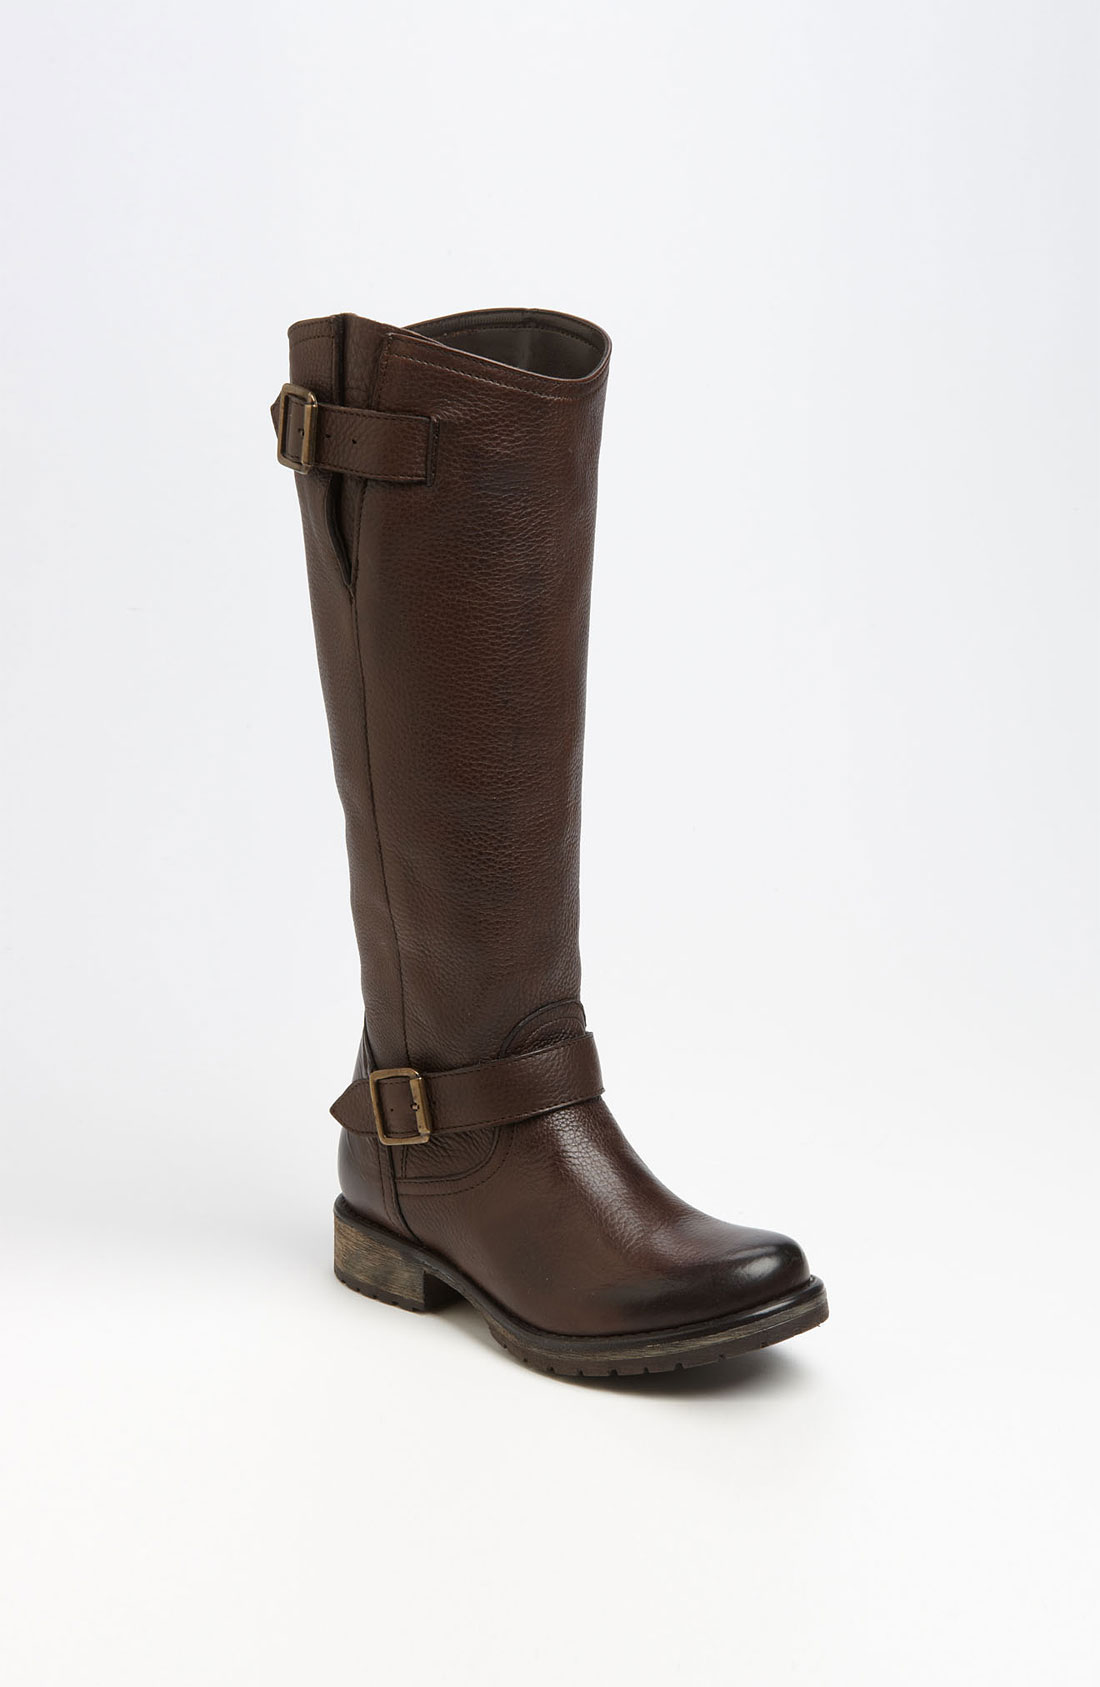 steve madden fairmont boot in brown brown leather lyst. Black Bedroom Furniture Sets. Home Design Ideas